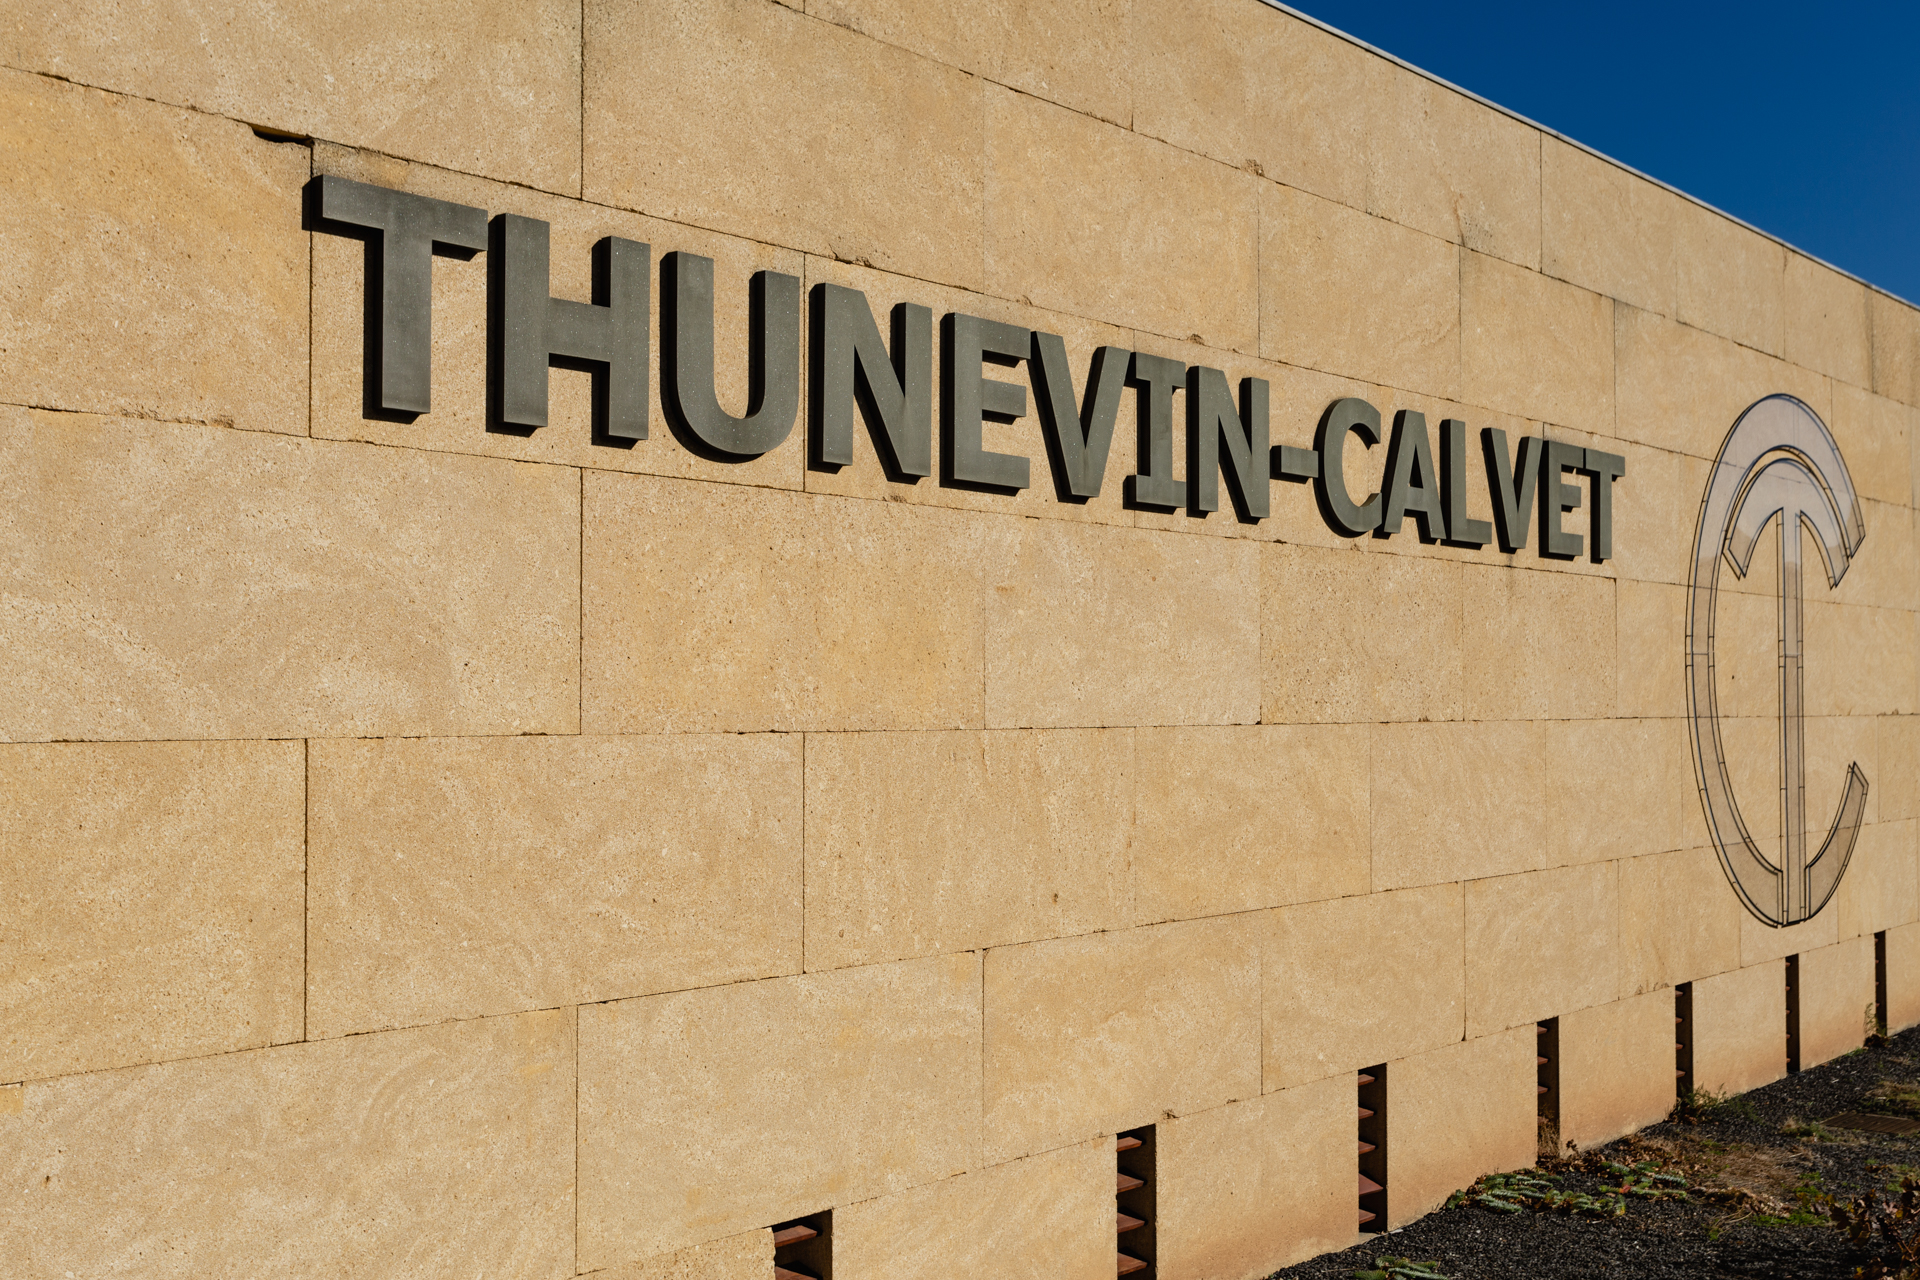 thunevin calvet gallerie domaine photo 10